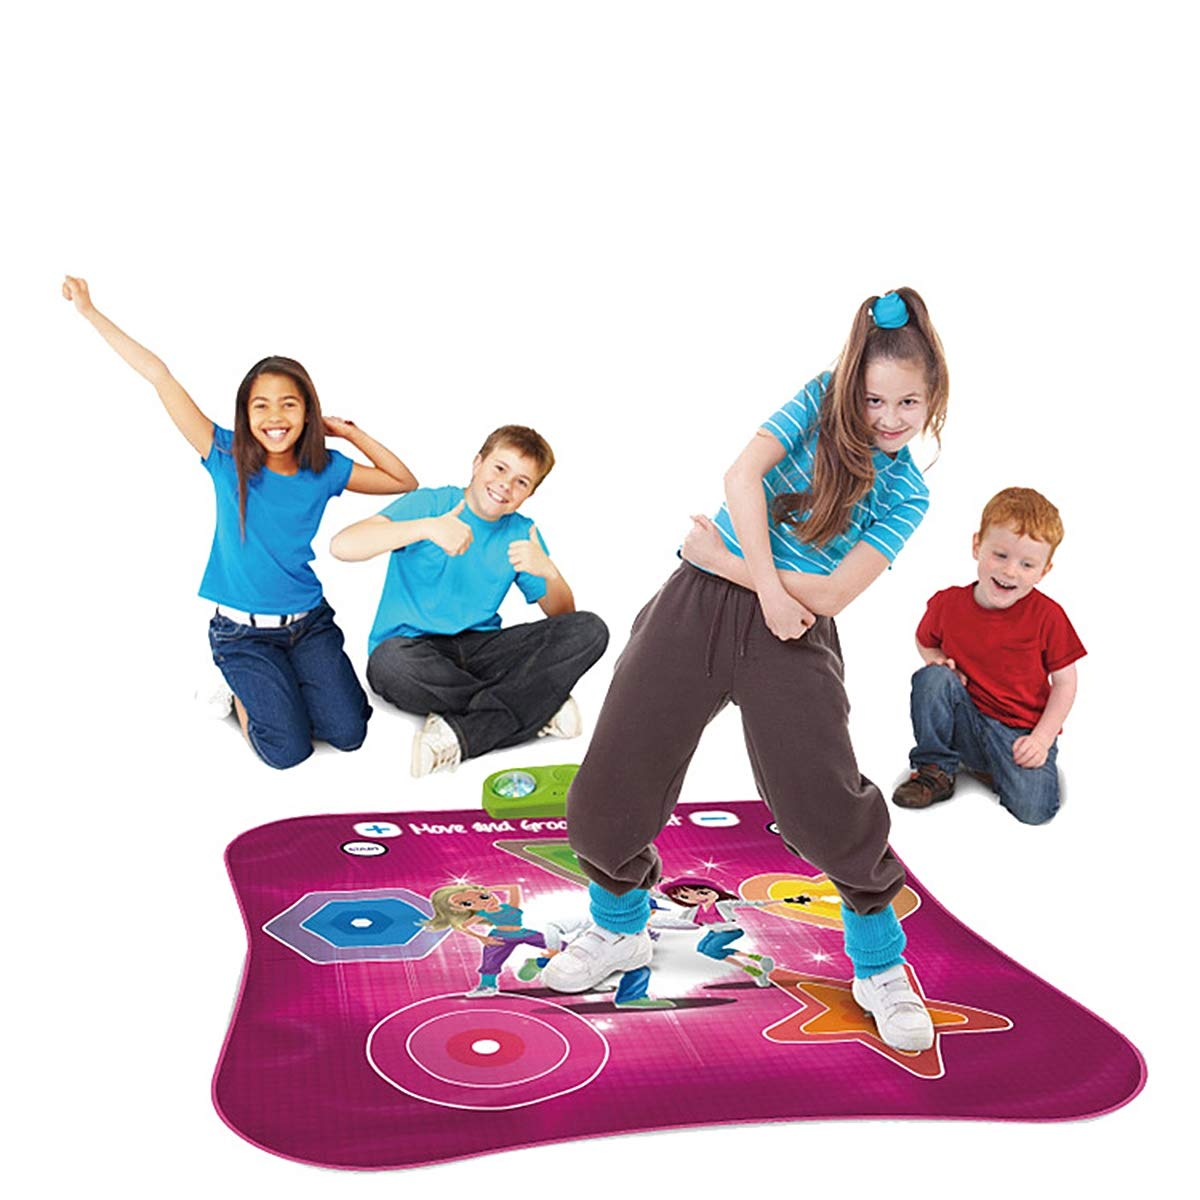 Kids Electronic Music Play Mat, Color Dance Pad Soft Baby Early Education Portable Music Dance Keyboard Carpet by Eustoma (Image #2)